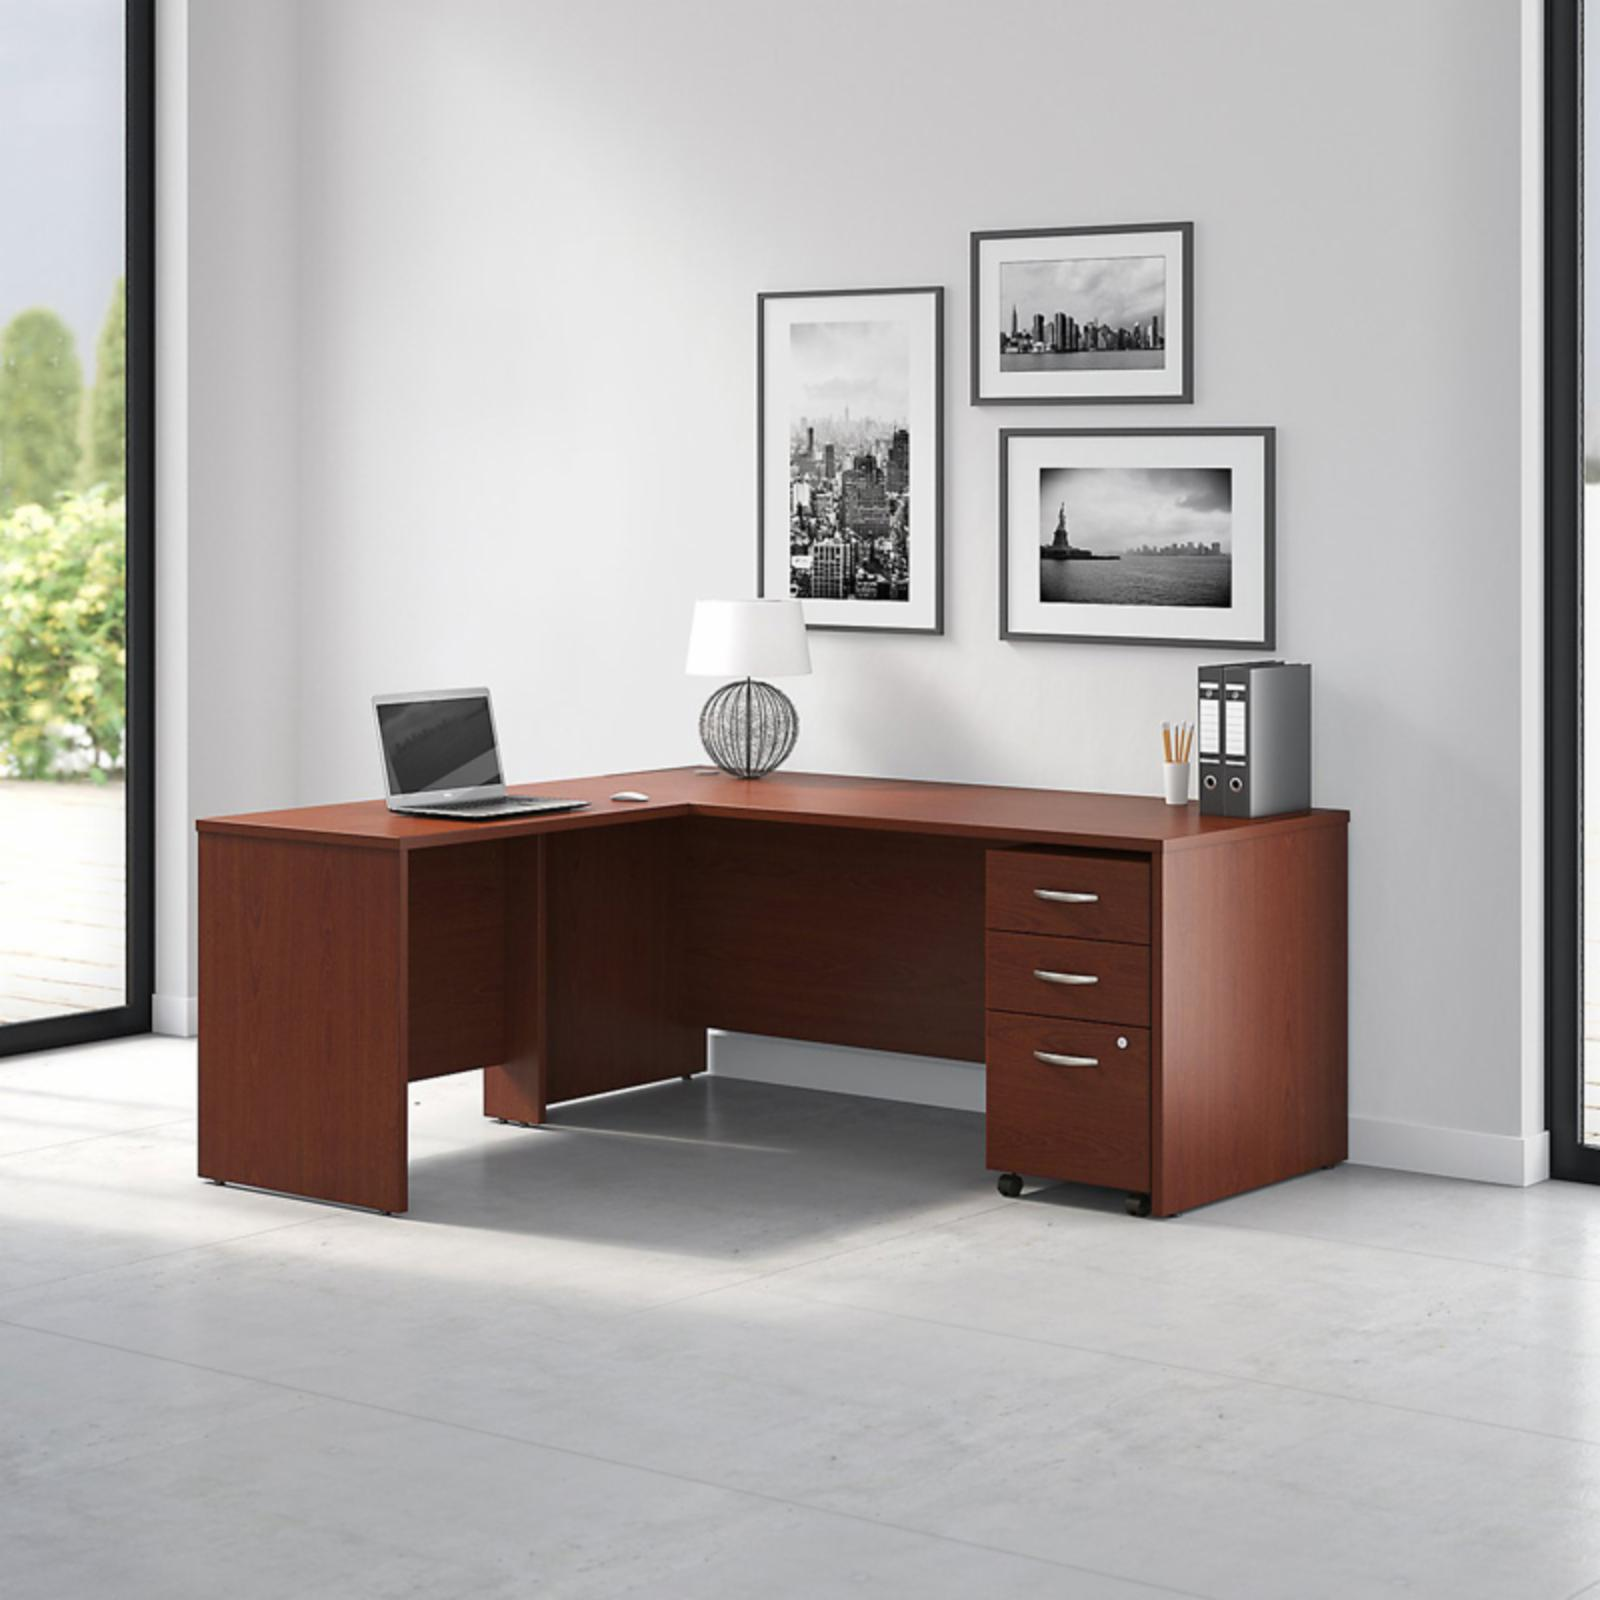 Office Connect Pro Office L Shaped Desk with Mobile Pedestal - PRF002MA